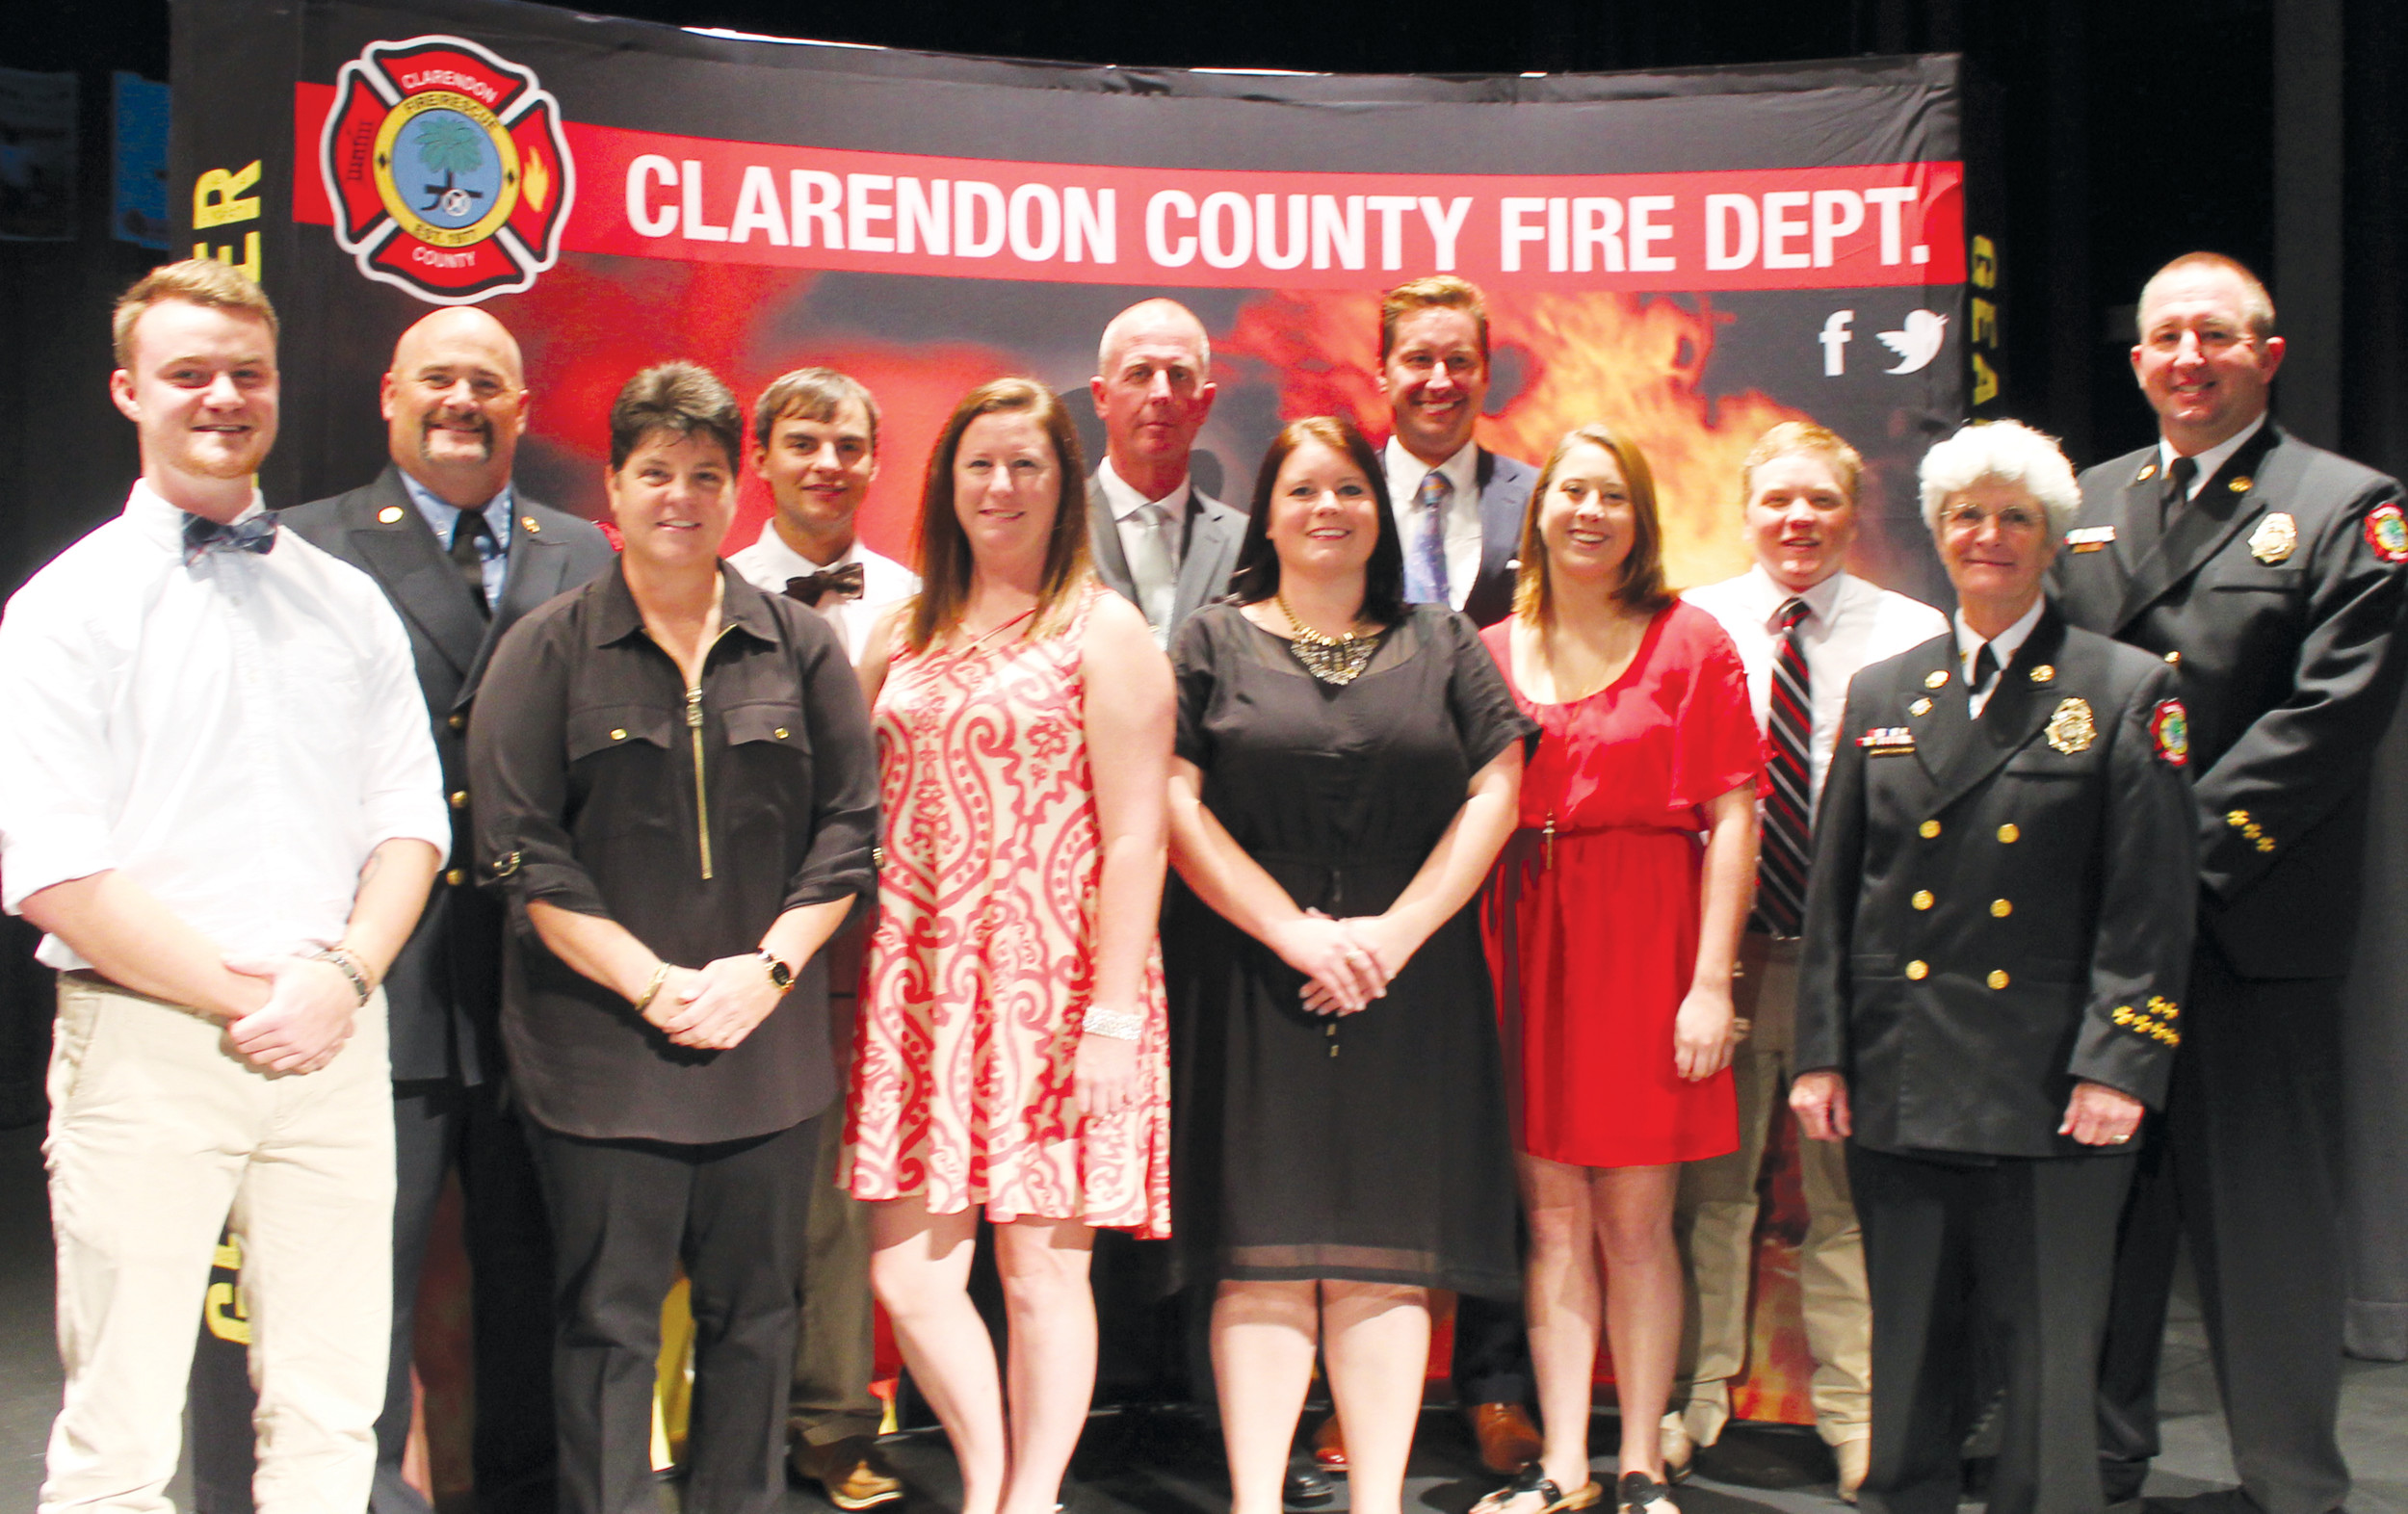 SHARRON HALEY / THE SUMTER ITEMThe Clarendon County Fire Department welcomed nine new firefighters following the department's their Sept. 19 Recruit Graduation Ceremony. Shown are new firefighter Chance T. Welch, Lt. Casey Connors, new firefighters Crystal M. Miller, Joshua M. Holladay, Courtney Atkinson, John L. Weeks, Chancely C. Coker, J. Matt Bradshaw, Brittani N. Bensoussan and James C. Bagnal, Clarendon County Fire Chief Frances Richbourg and Deputy Chief of Operations Michael Johnson.